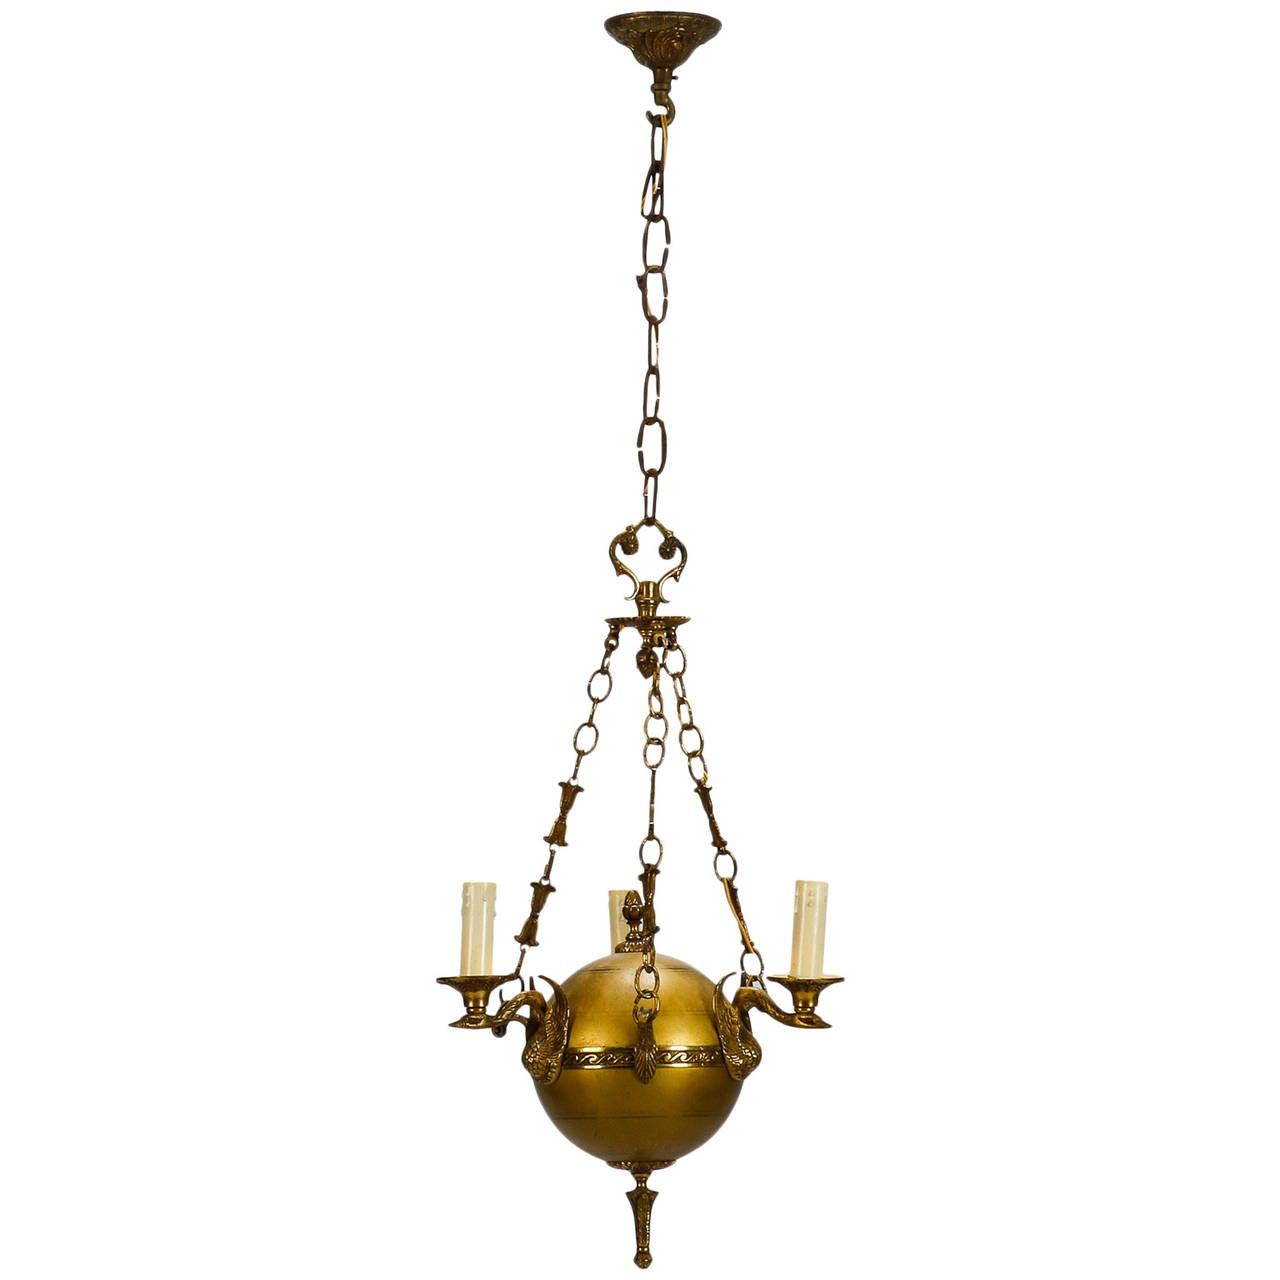 Small Round Neoclassical Three-Light Brass Fixture with Original Chain